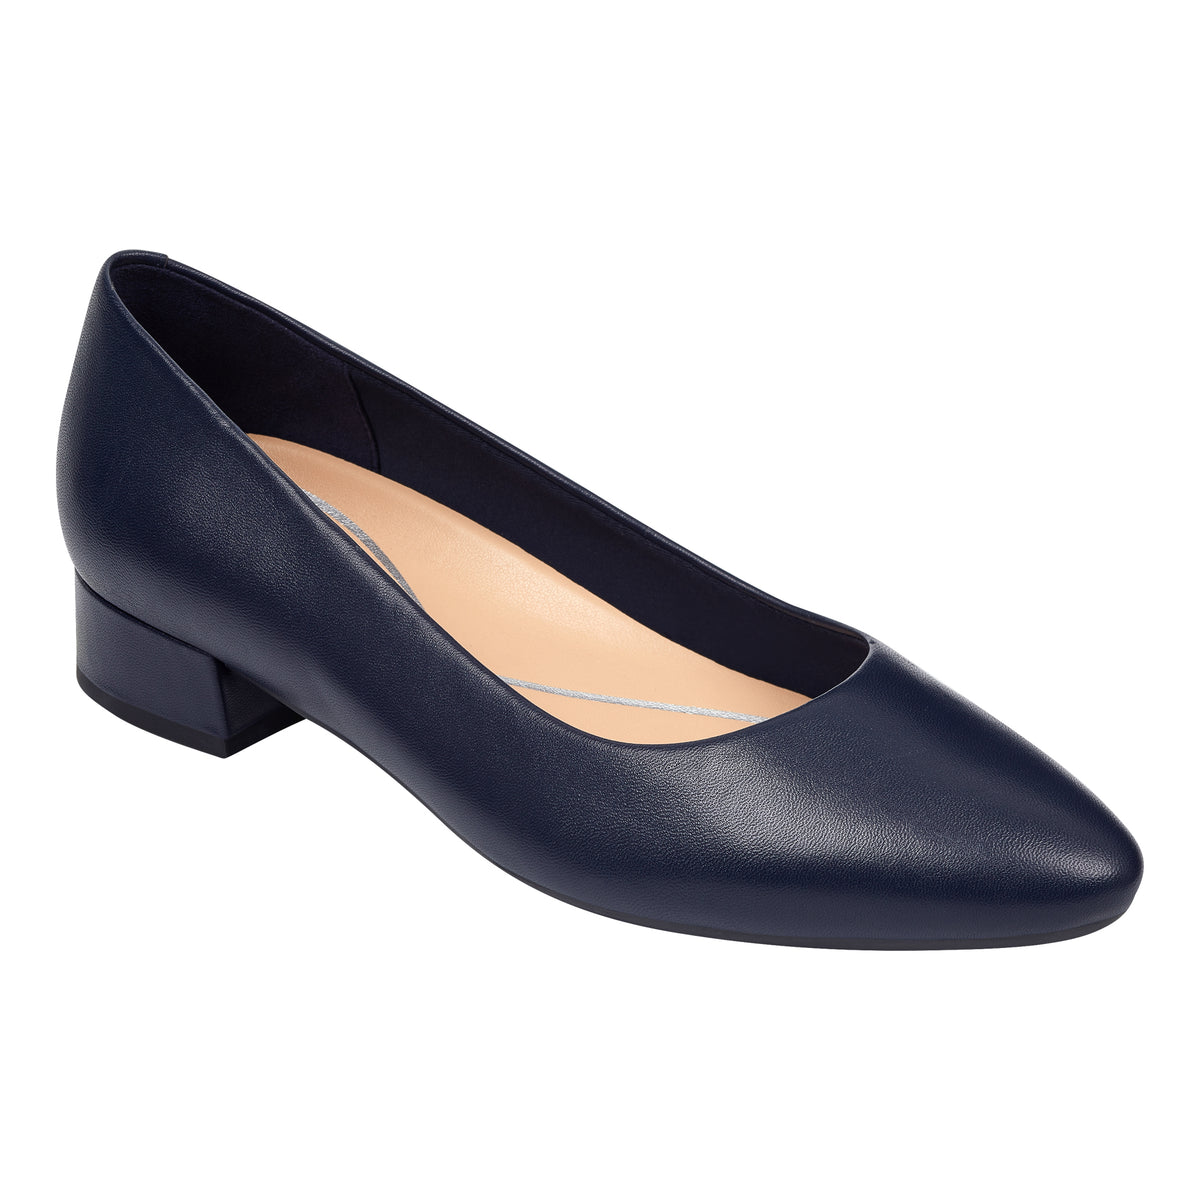 Caldise Leather Low Heel Dress Shoes